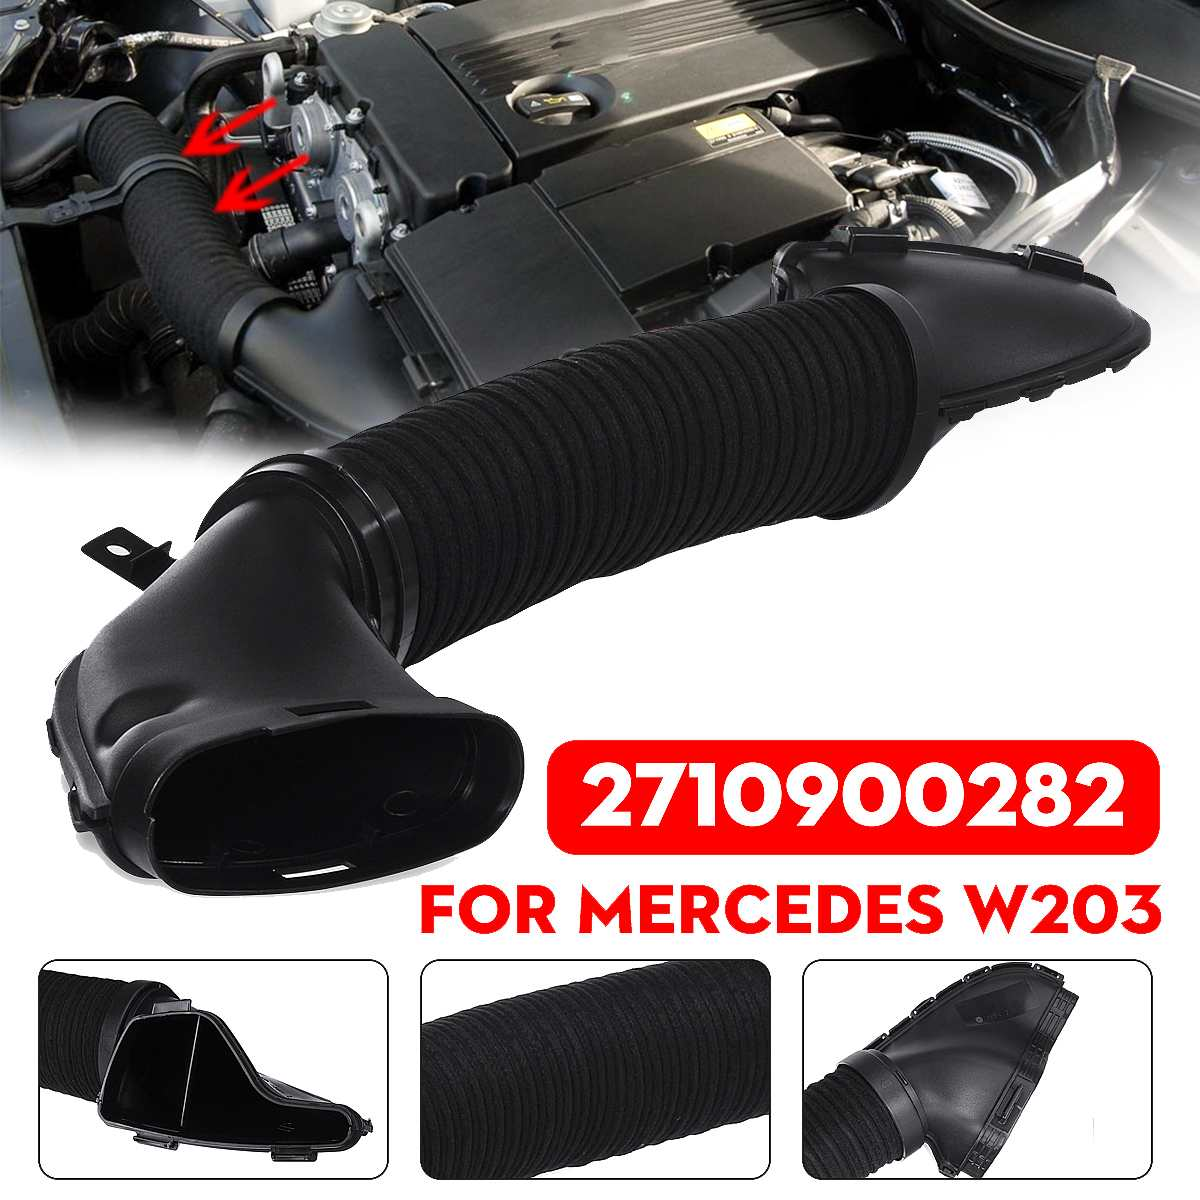 Hot New Air Hose Intake Pipe 2710900282 For Mercedes-Benz W203 C200 CLK200 CLC 160 180 200